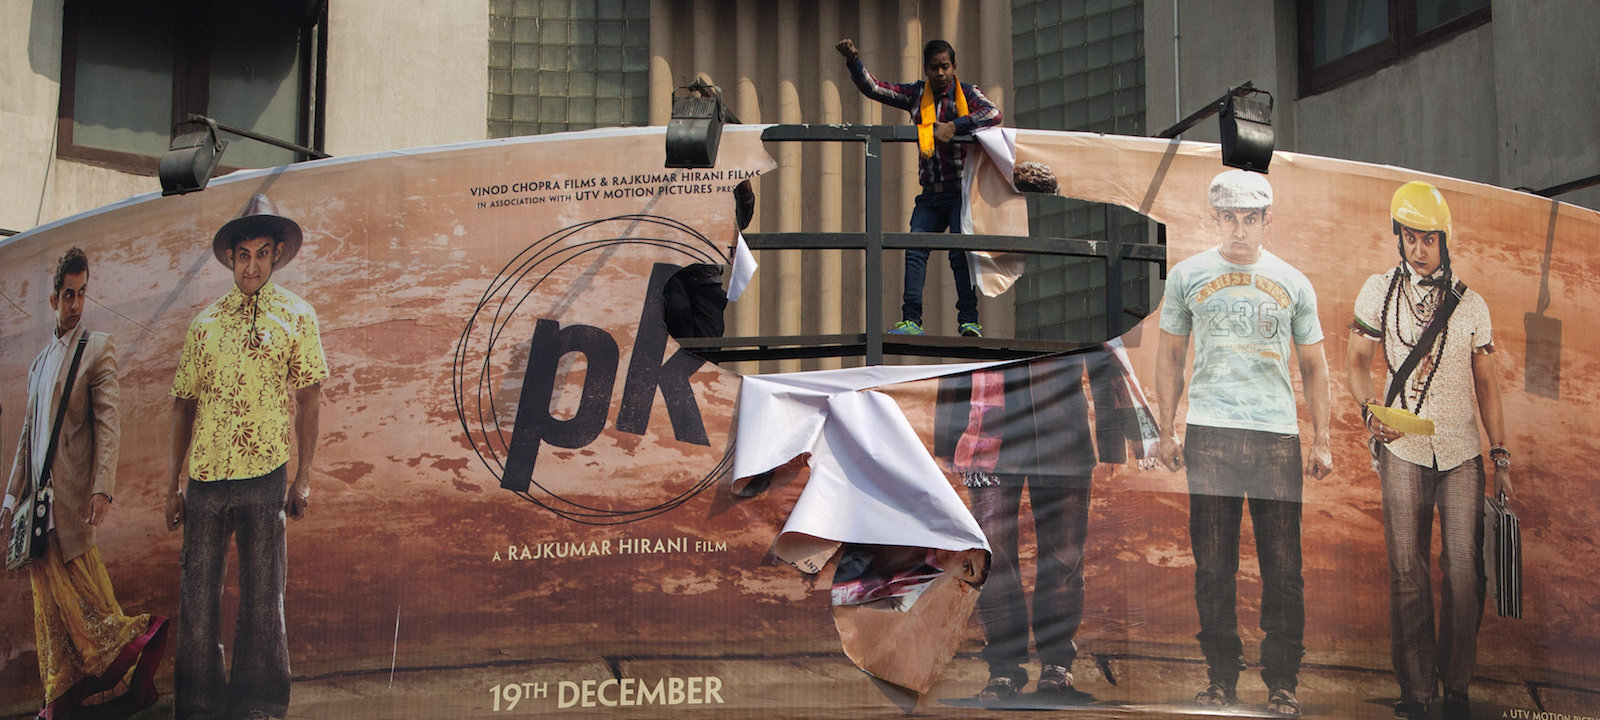 """Hindu right-wing activists of the Hindu Sena tear a giant movie poster during a protest demanding a ban on the Bollywood movie """"PK"""" in New Delhi, India, Tuesday, Dec. 30, 2014."""